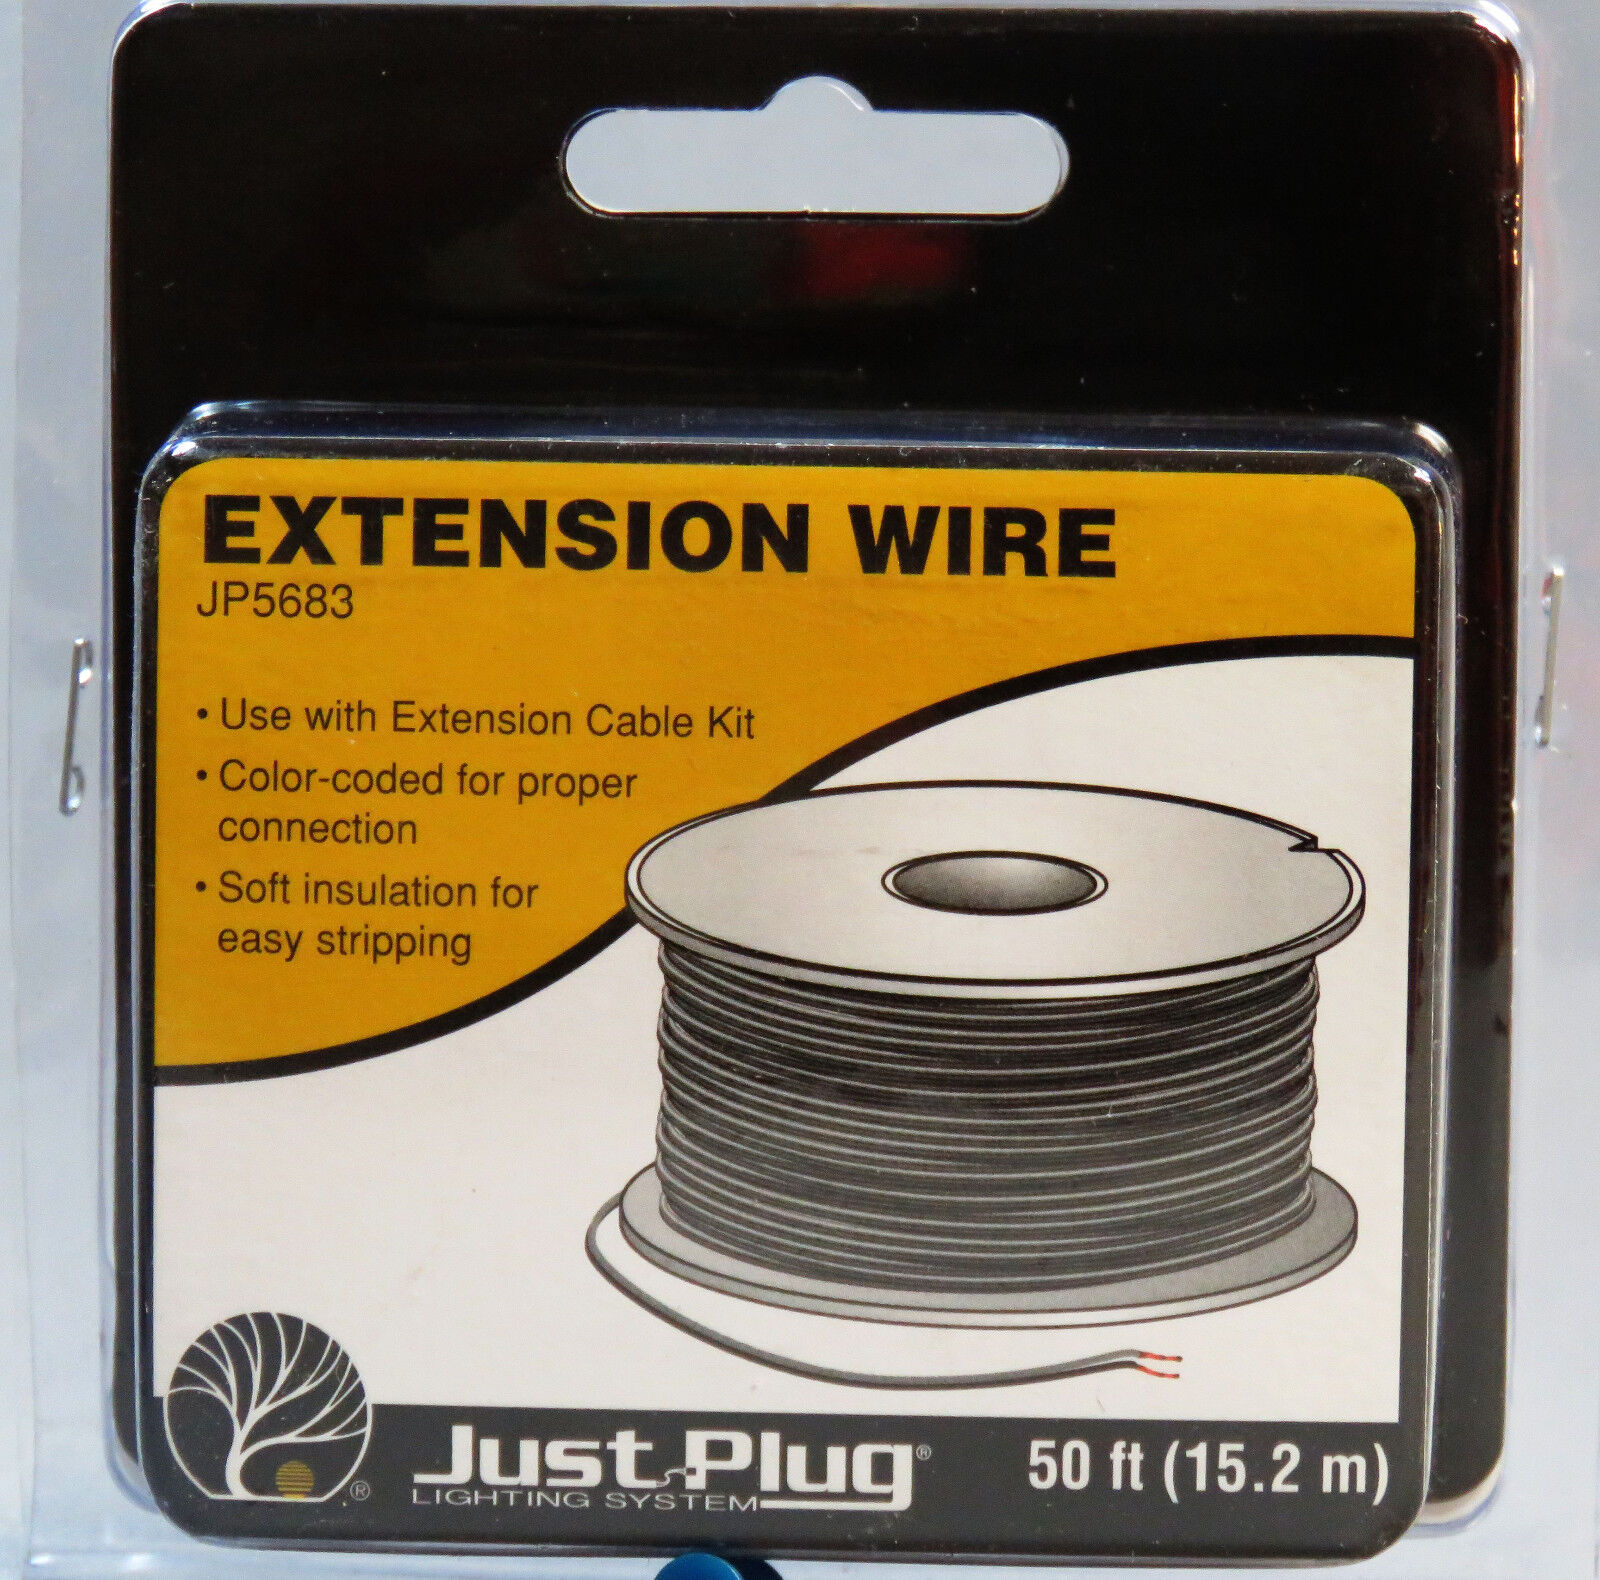 WOODLAND SCENICS EXTENSION WIRE FOR JUST PLUG LIGHTING SYSTE